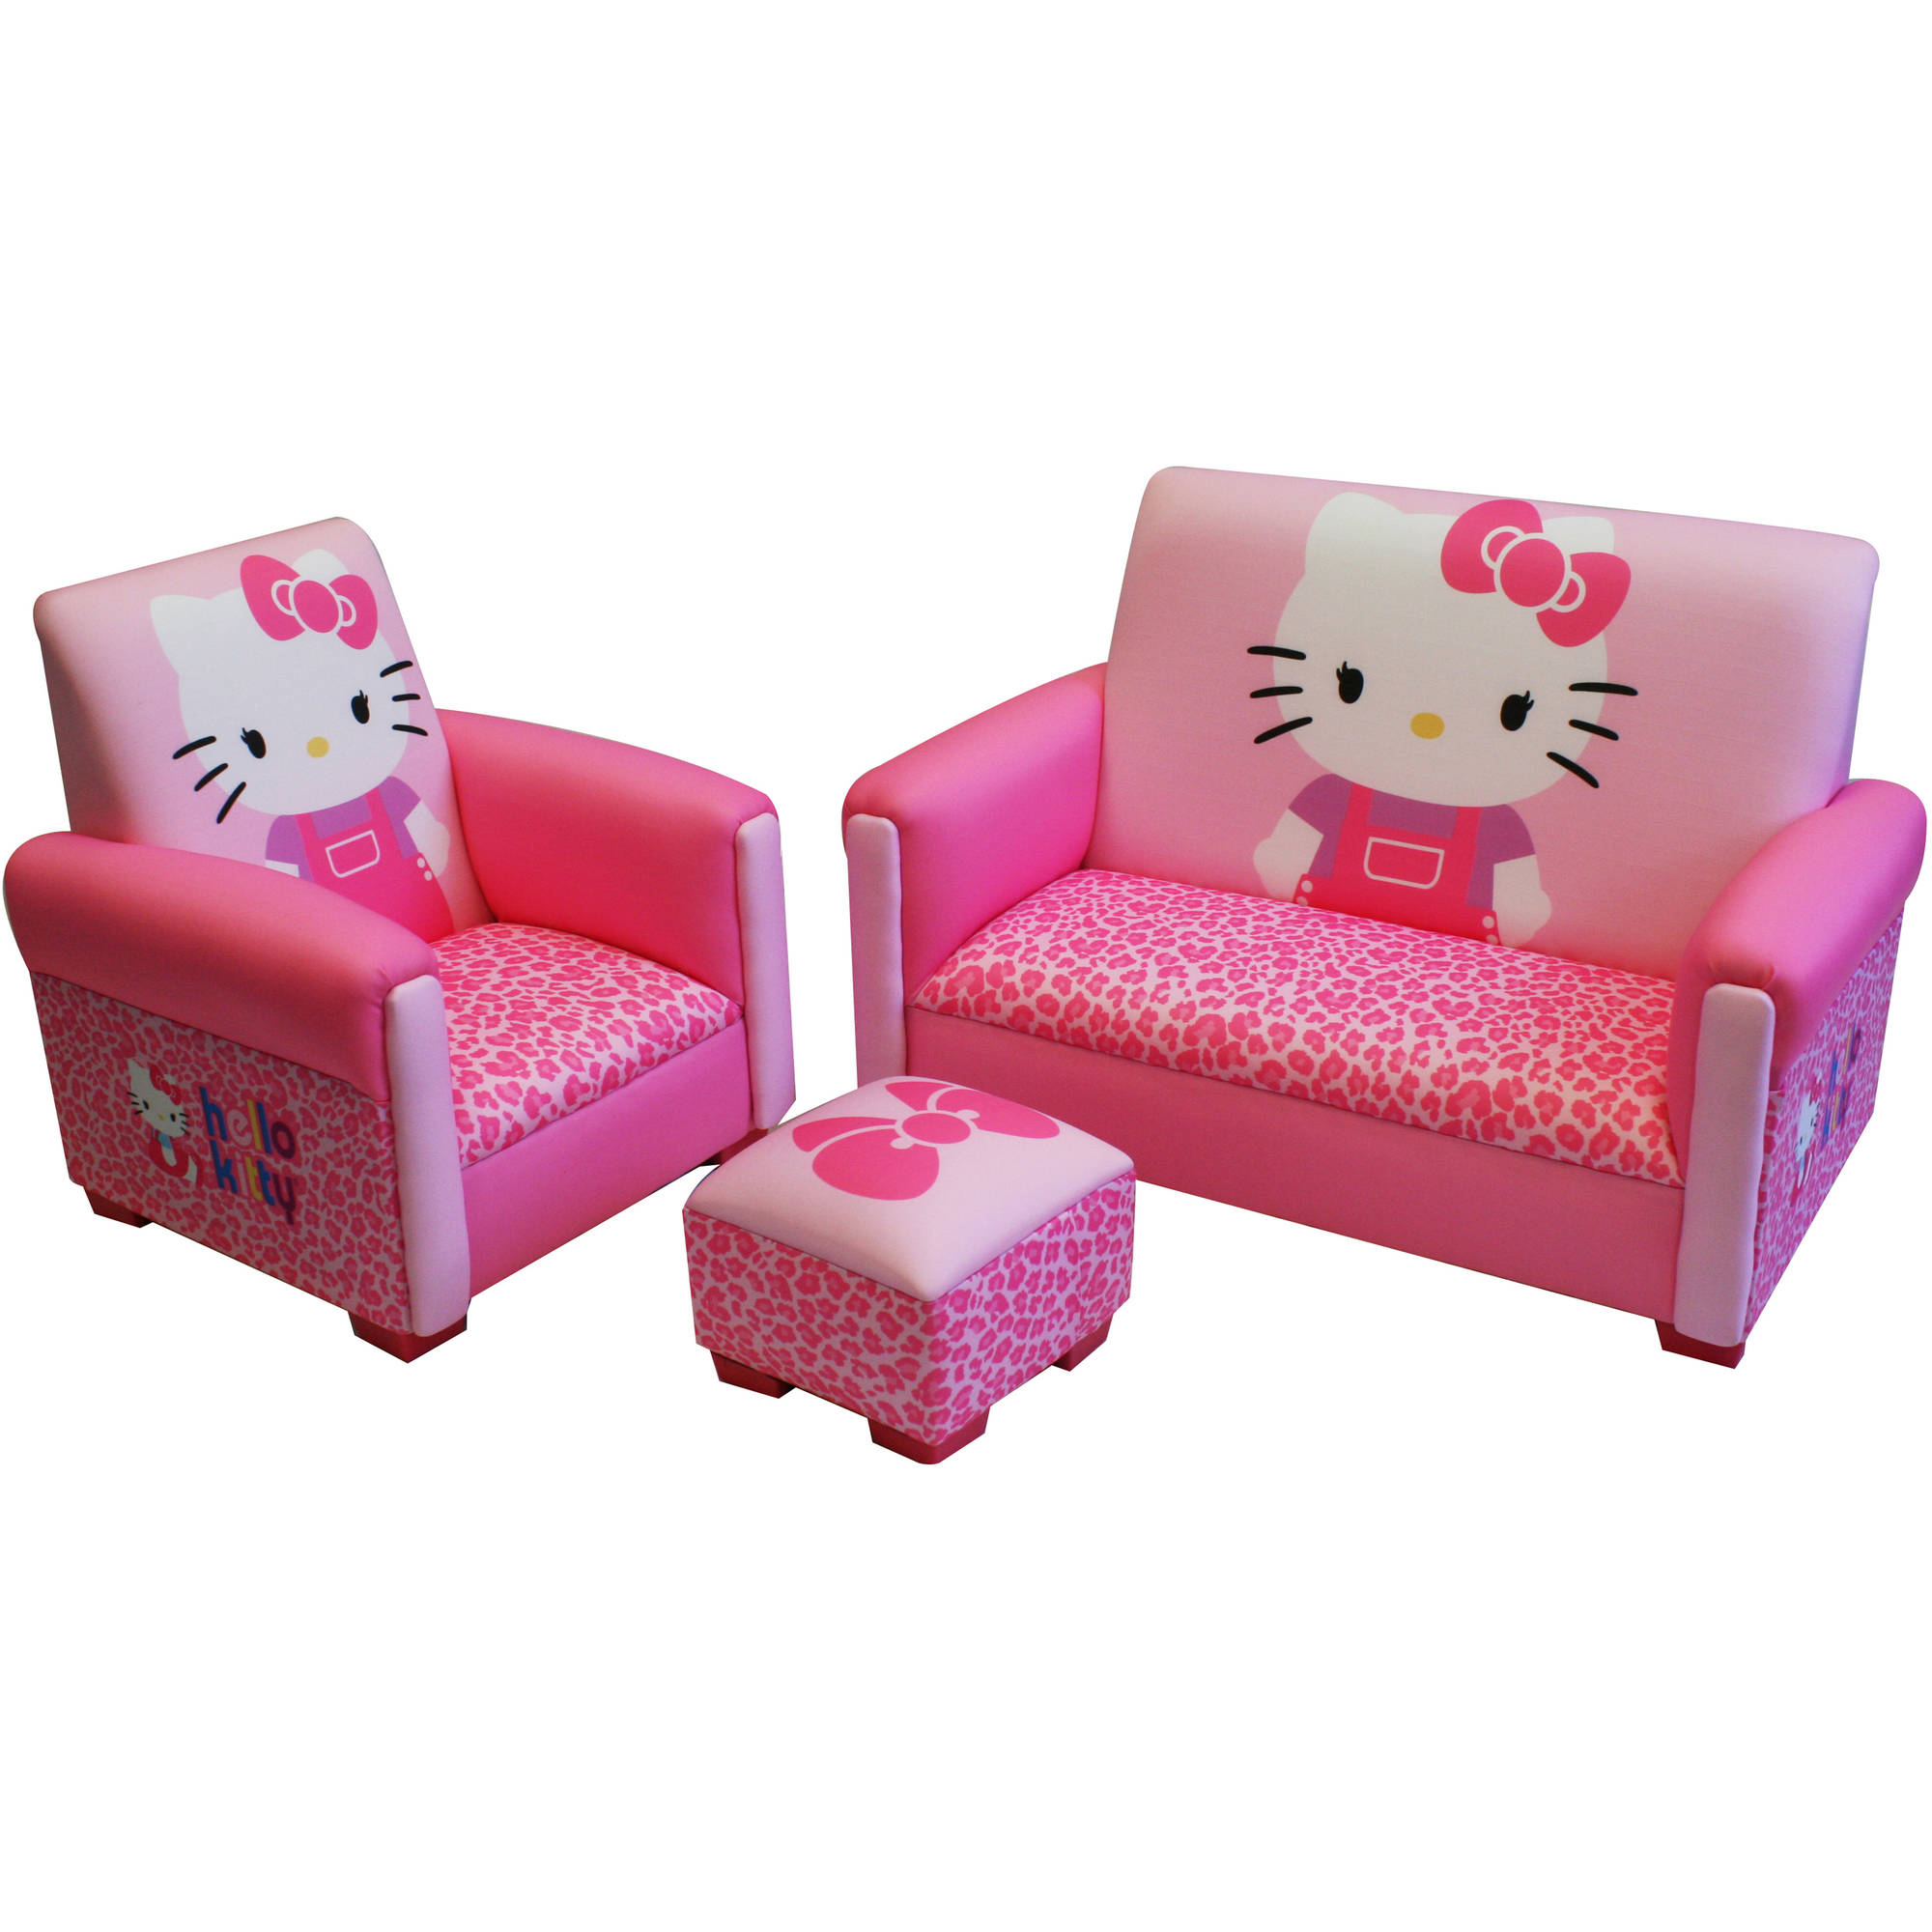 Attrayant Hello Kitty Bows Toddler 3 Piece Sofa, Chair And Ottoman Set